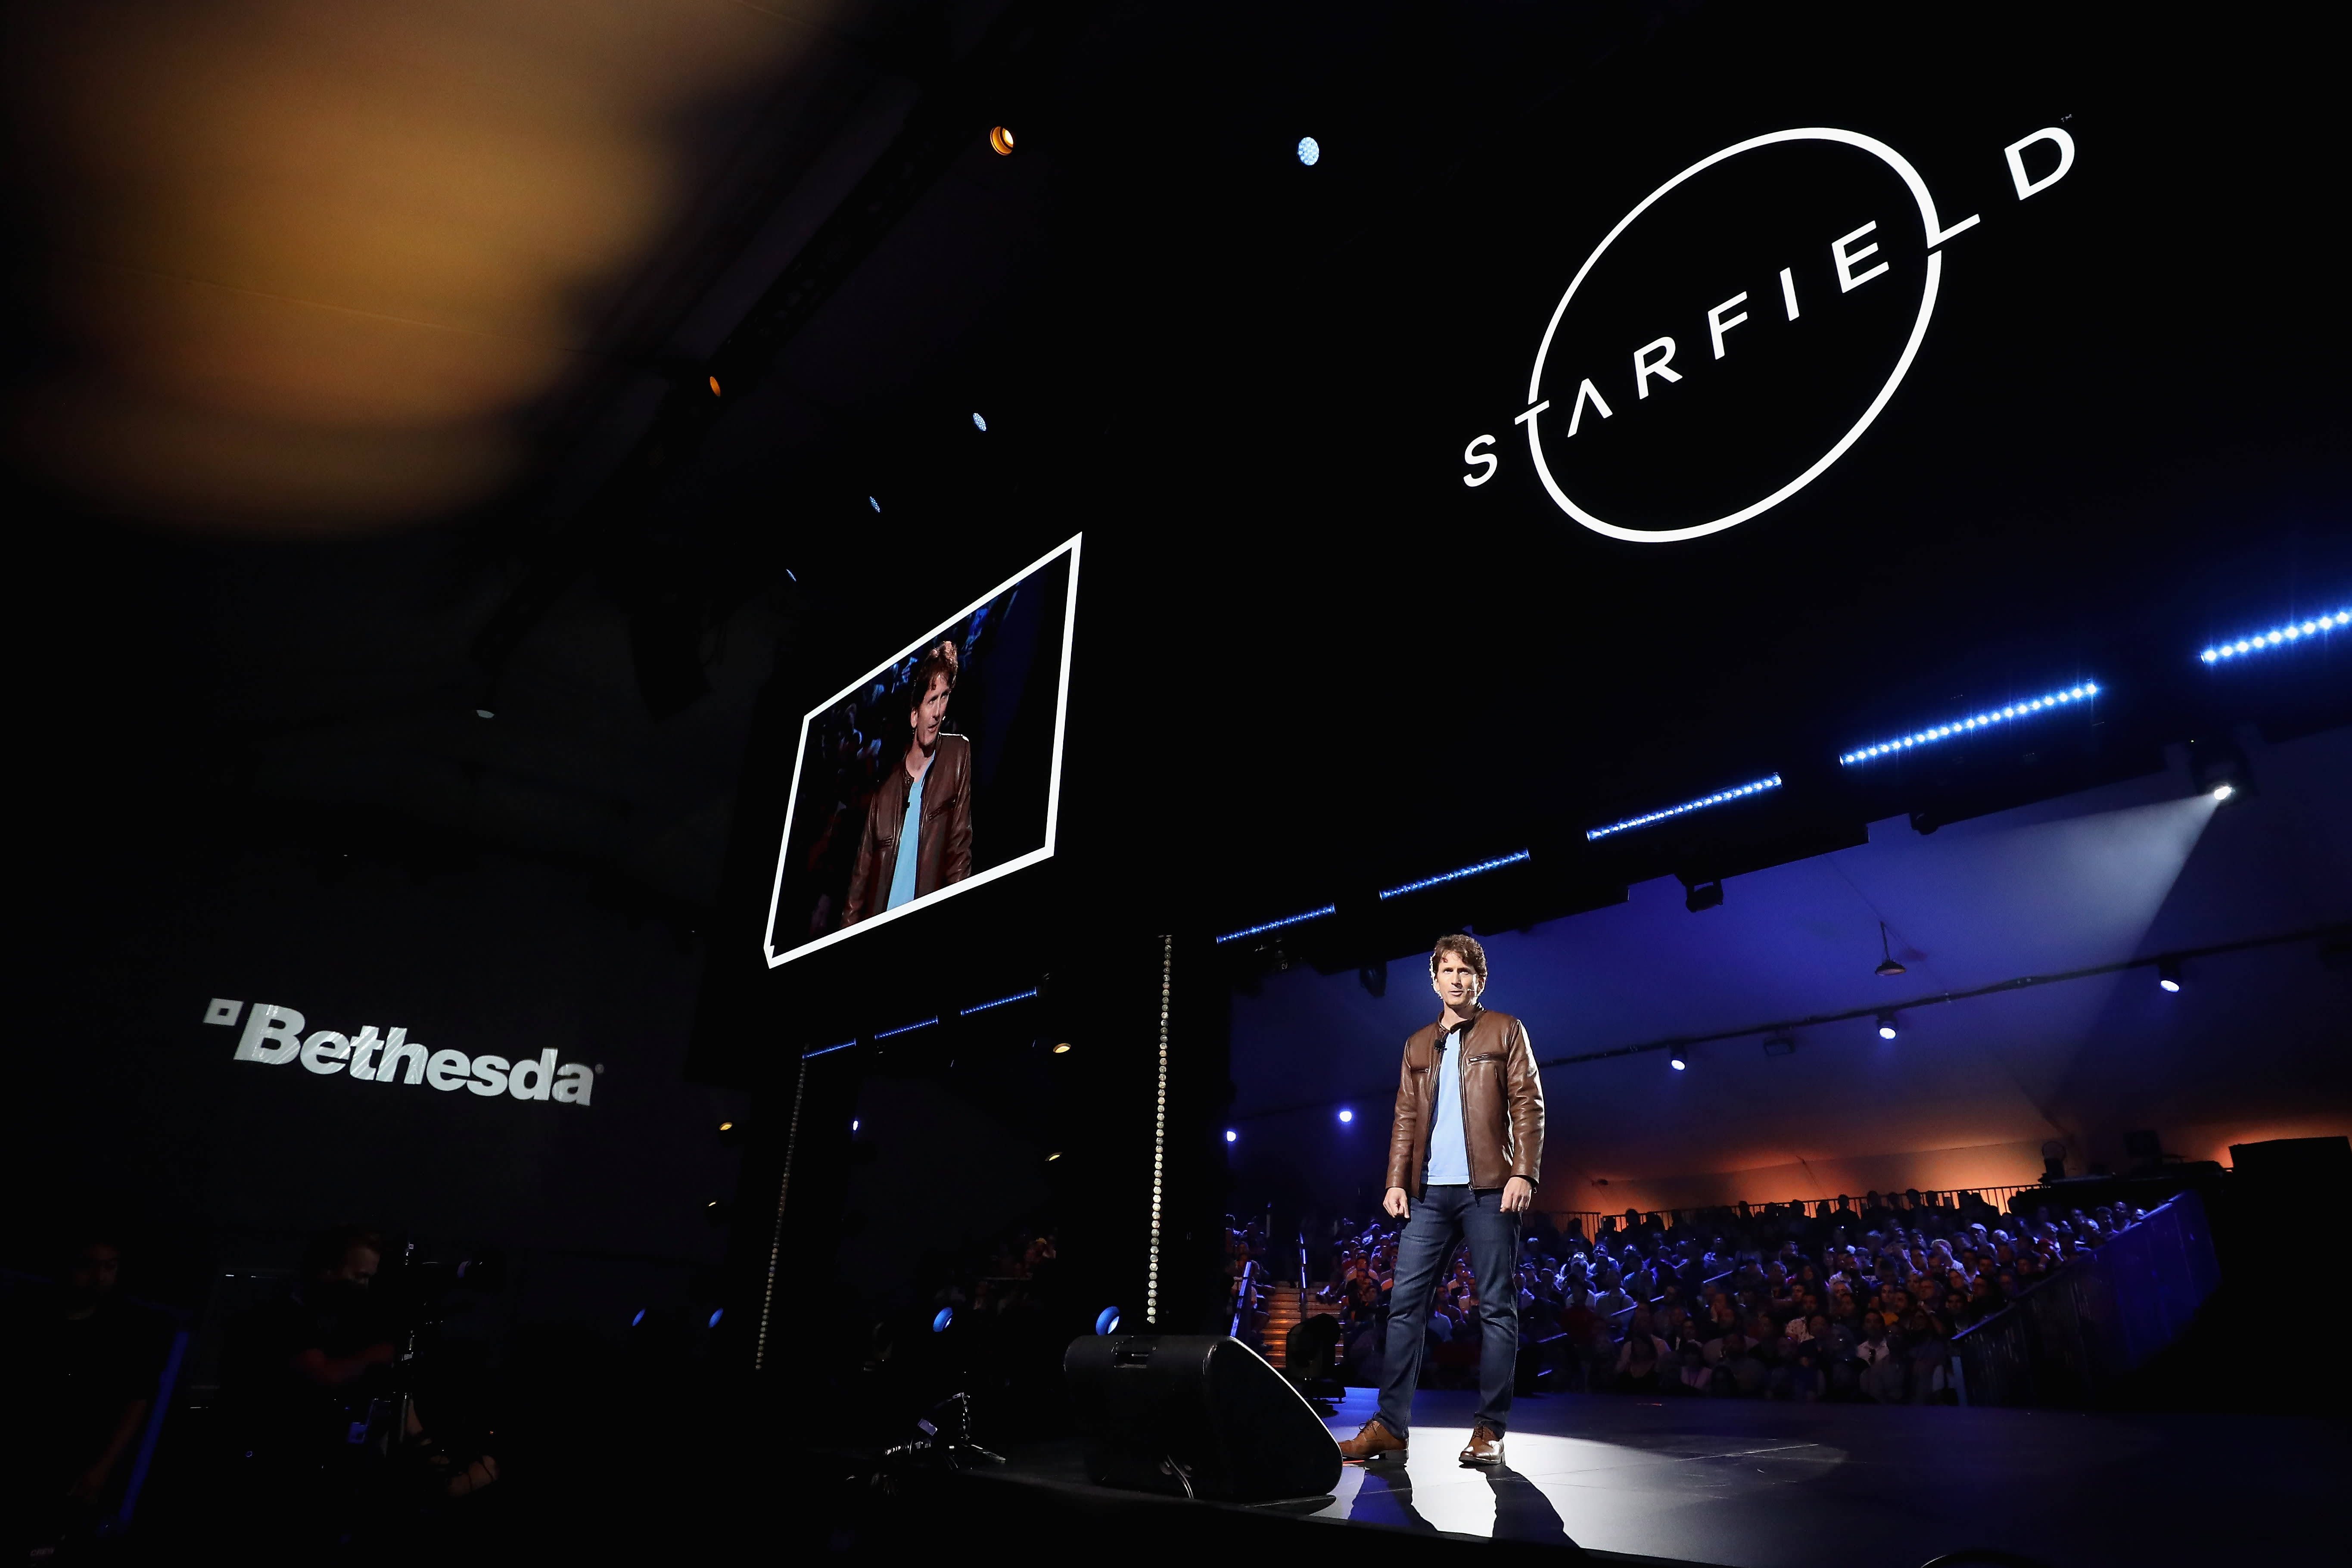 At E3 gaming event, Microsoft teases sci-fi epic Starfield while Ubisoft shows off new Avatar title